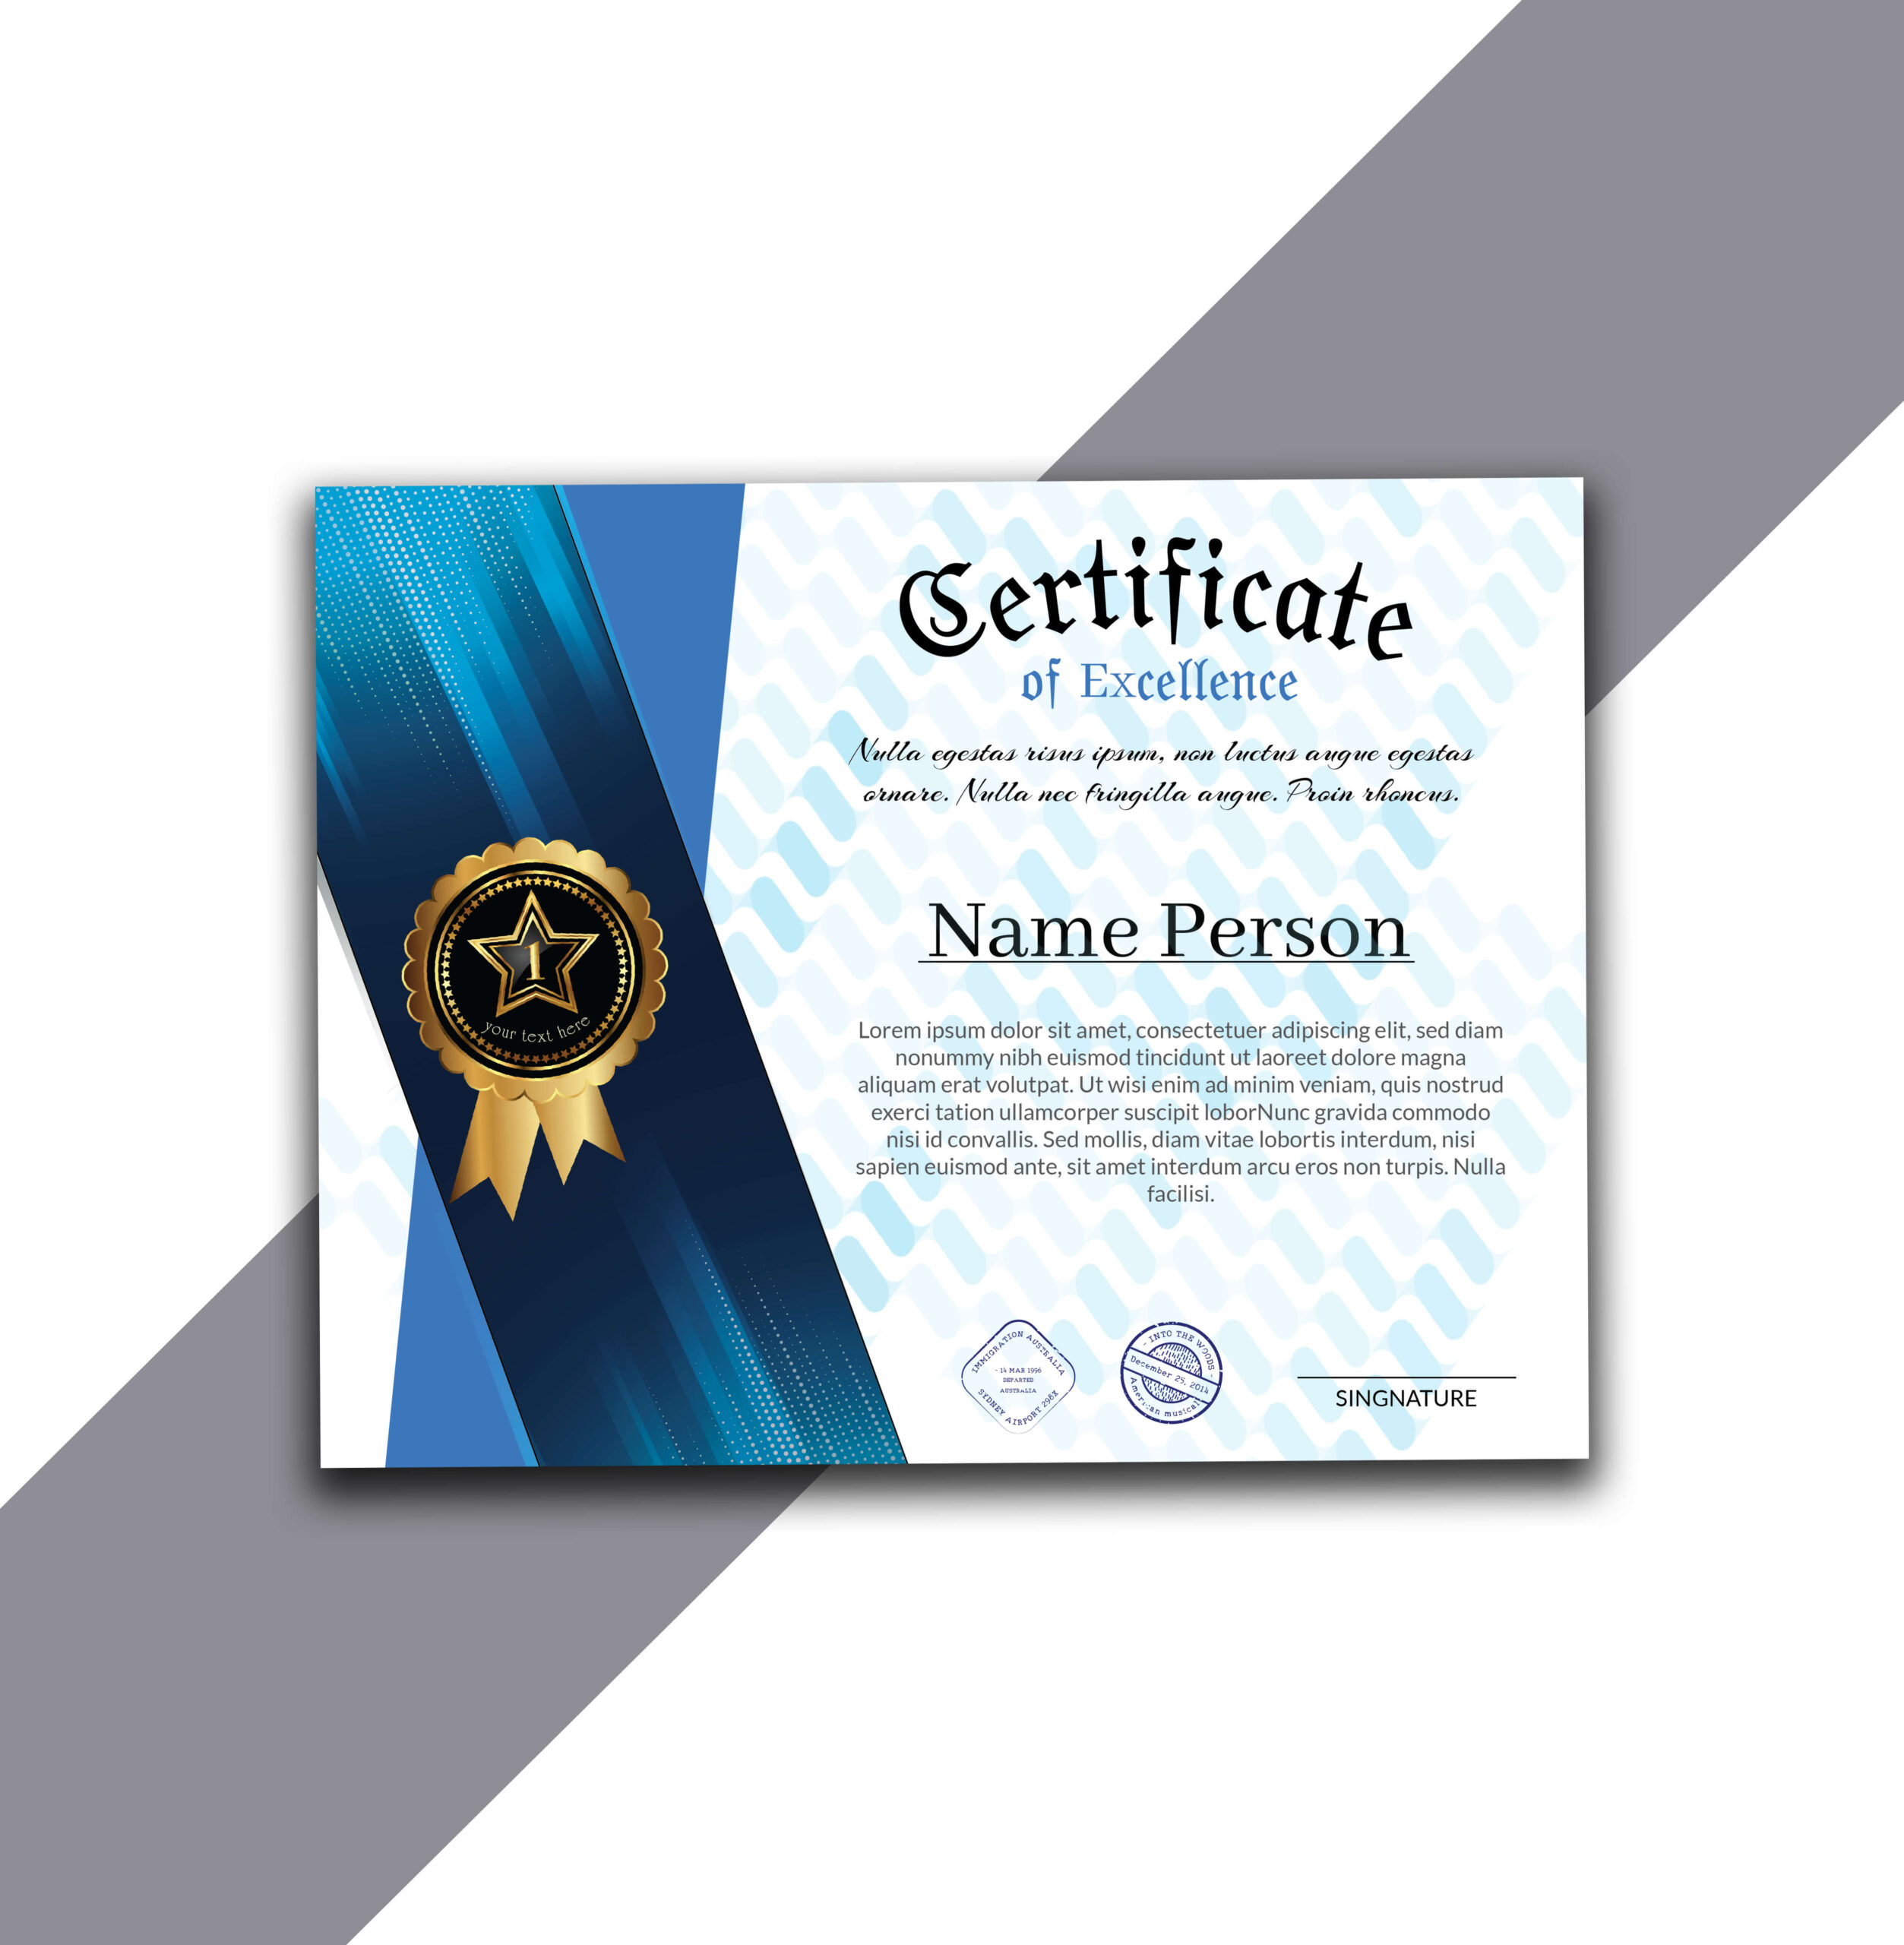 Get Free Certificate of Excellence Designed in AI